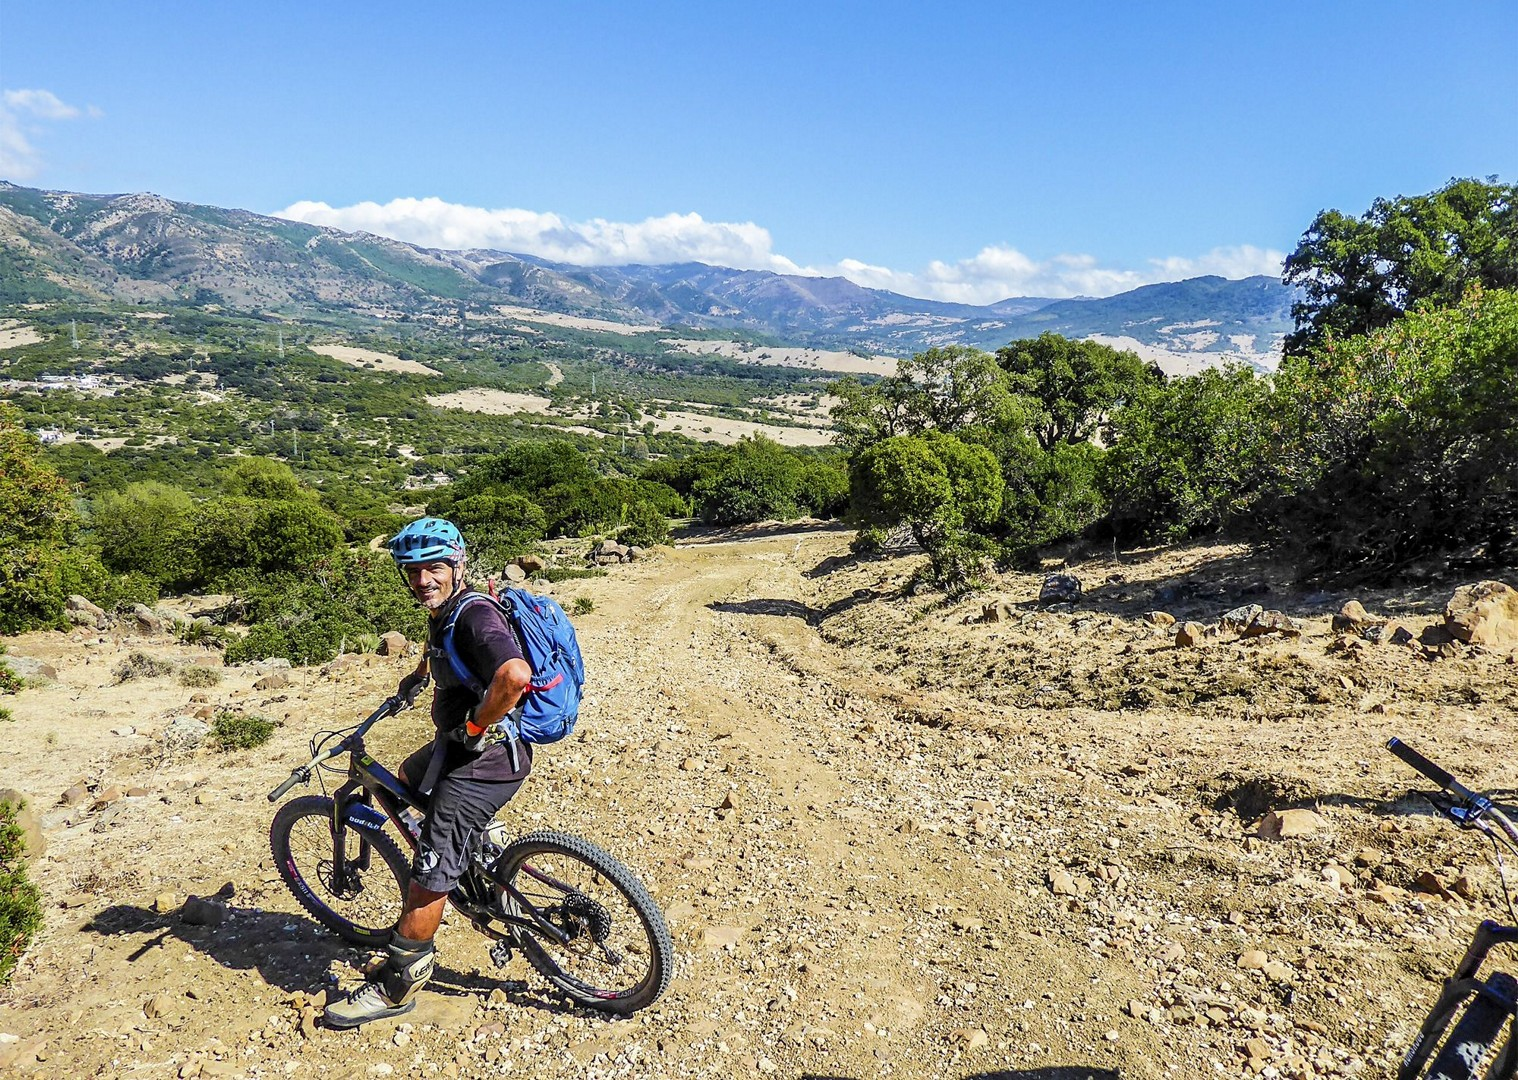 fun-trails-jimera-spain-saddle-skedaddle-andalucia.jpg - Spain - Awesome Andalucia - Guided Mountain Bike Holiday - Mountain Biking